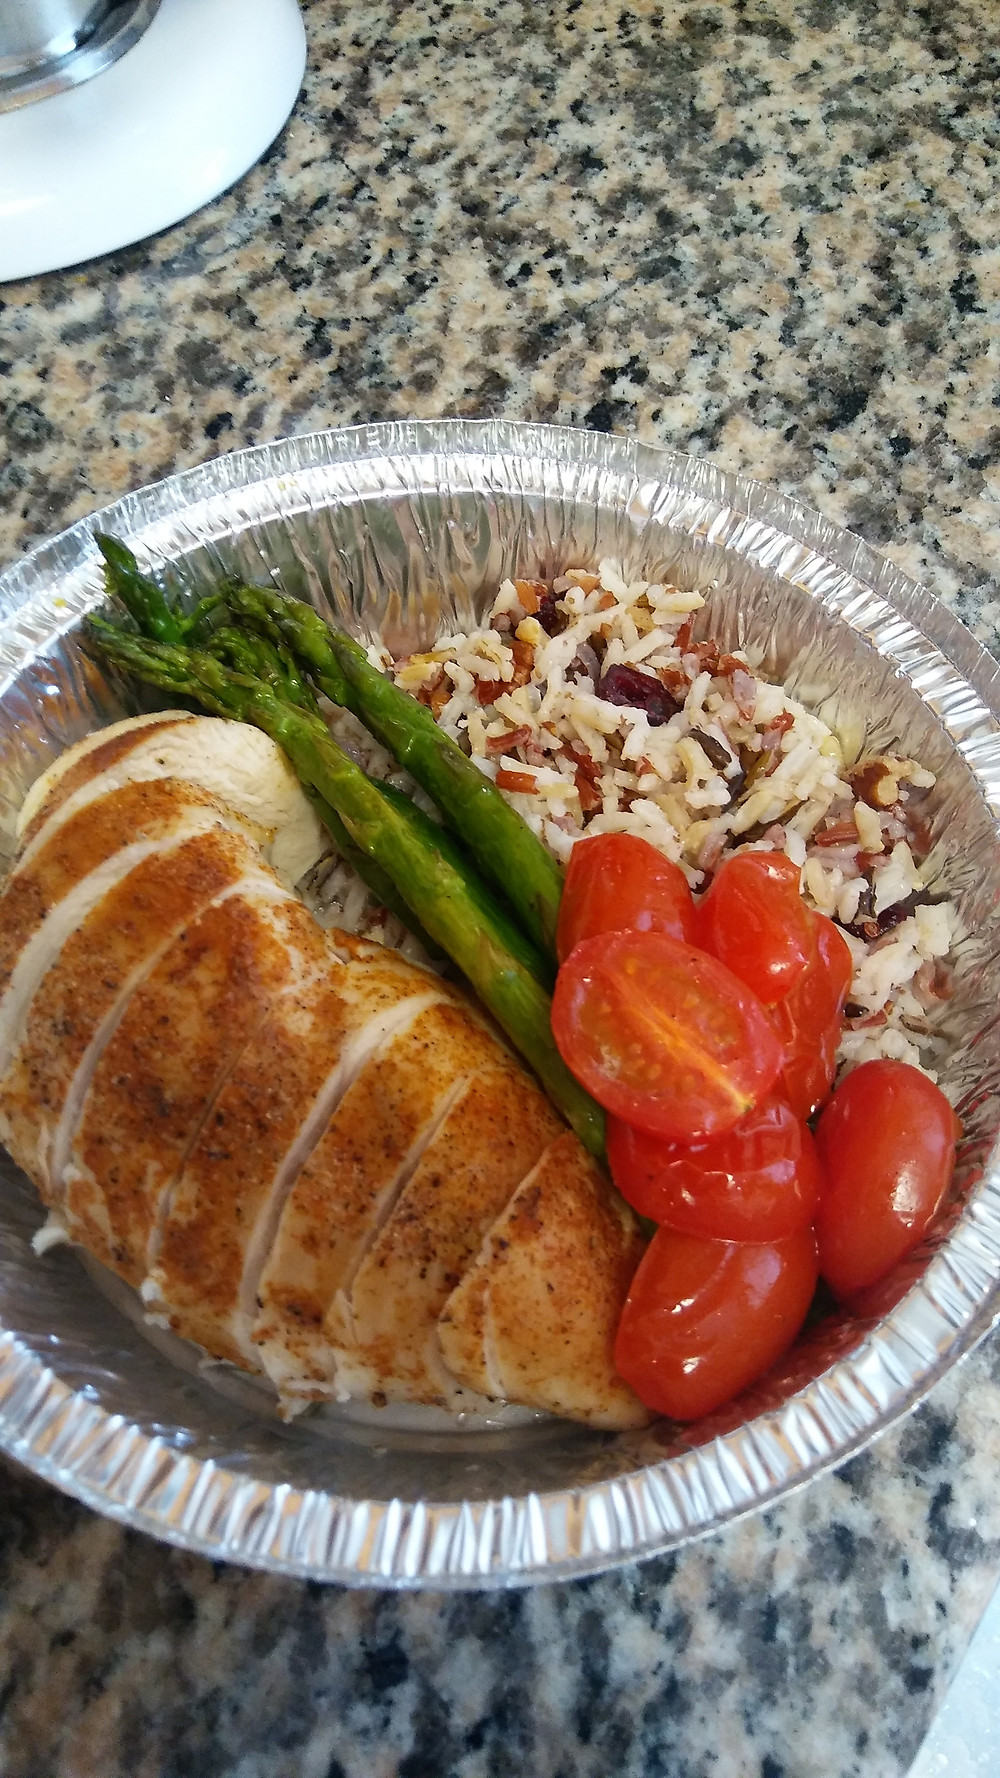 Spicy Cajun chicken breast served with roasted asparagus and tomatoes, wild rice blend infused with pecan and Craisins. Sodium 561 mg